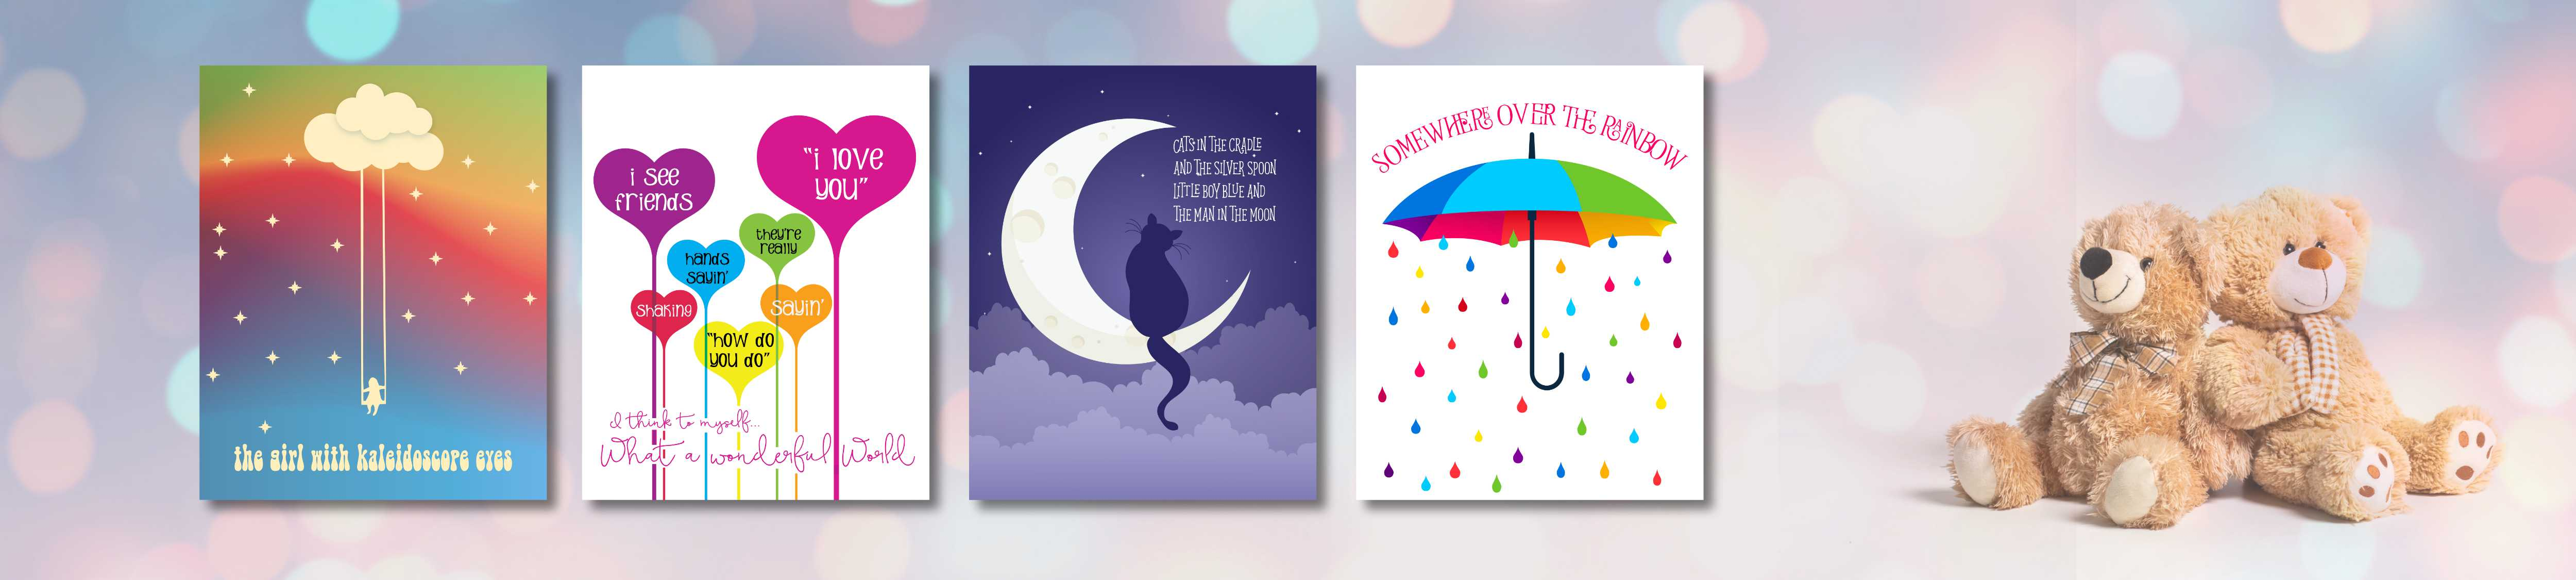 Light-Hearted Songs for Kids and Childrens Playrooms - Wall Art Print Posters and Canvas